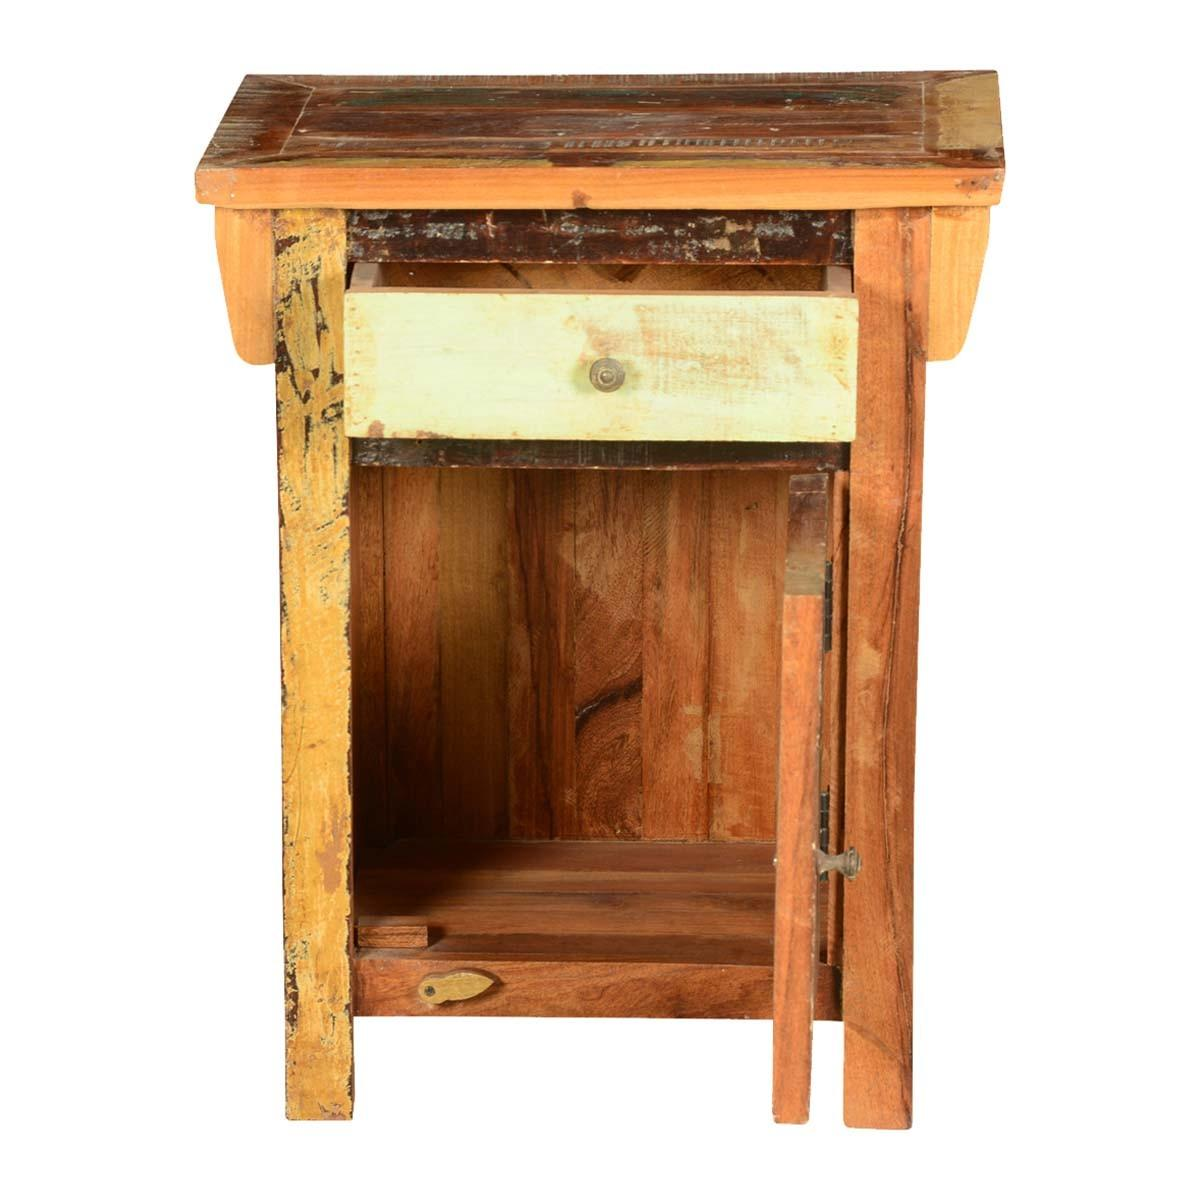 Rustic Square Reclaimed Wood Nightstand End Table Cabinet